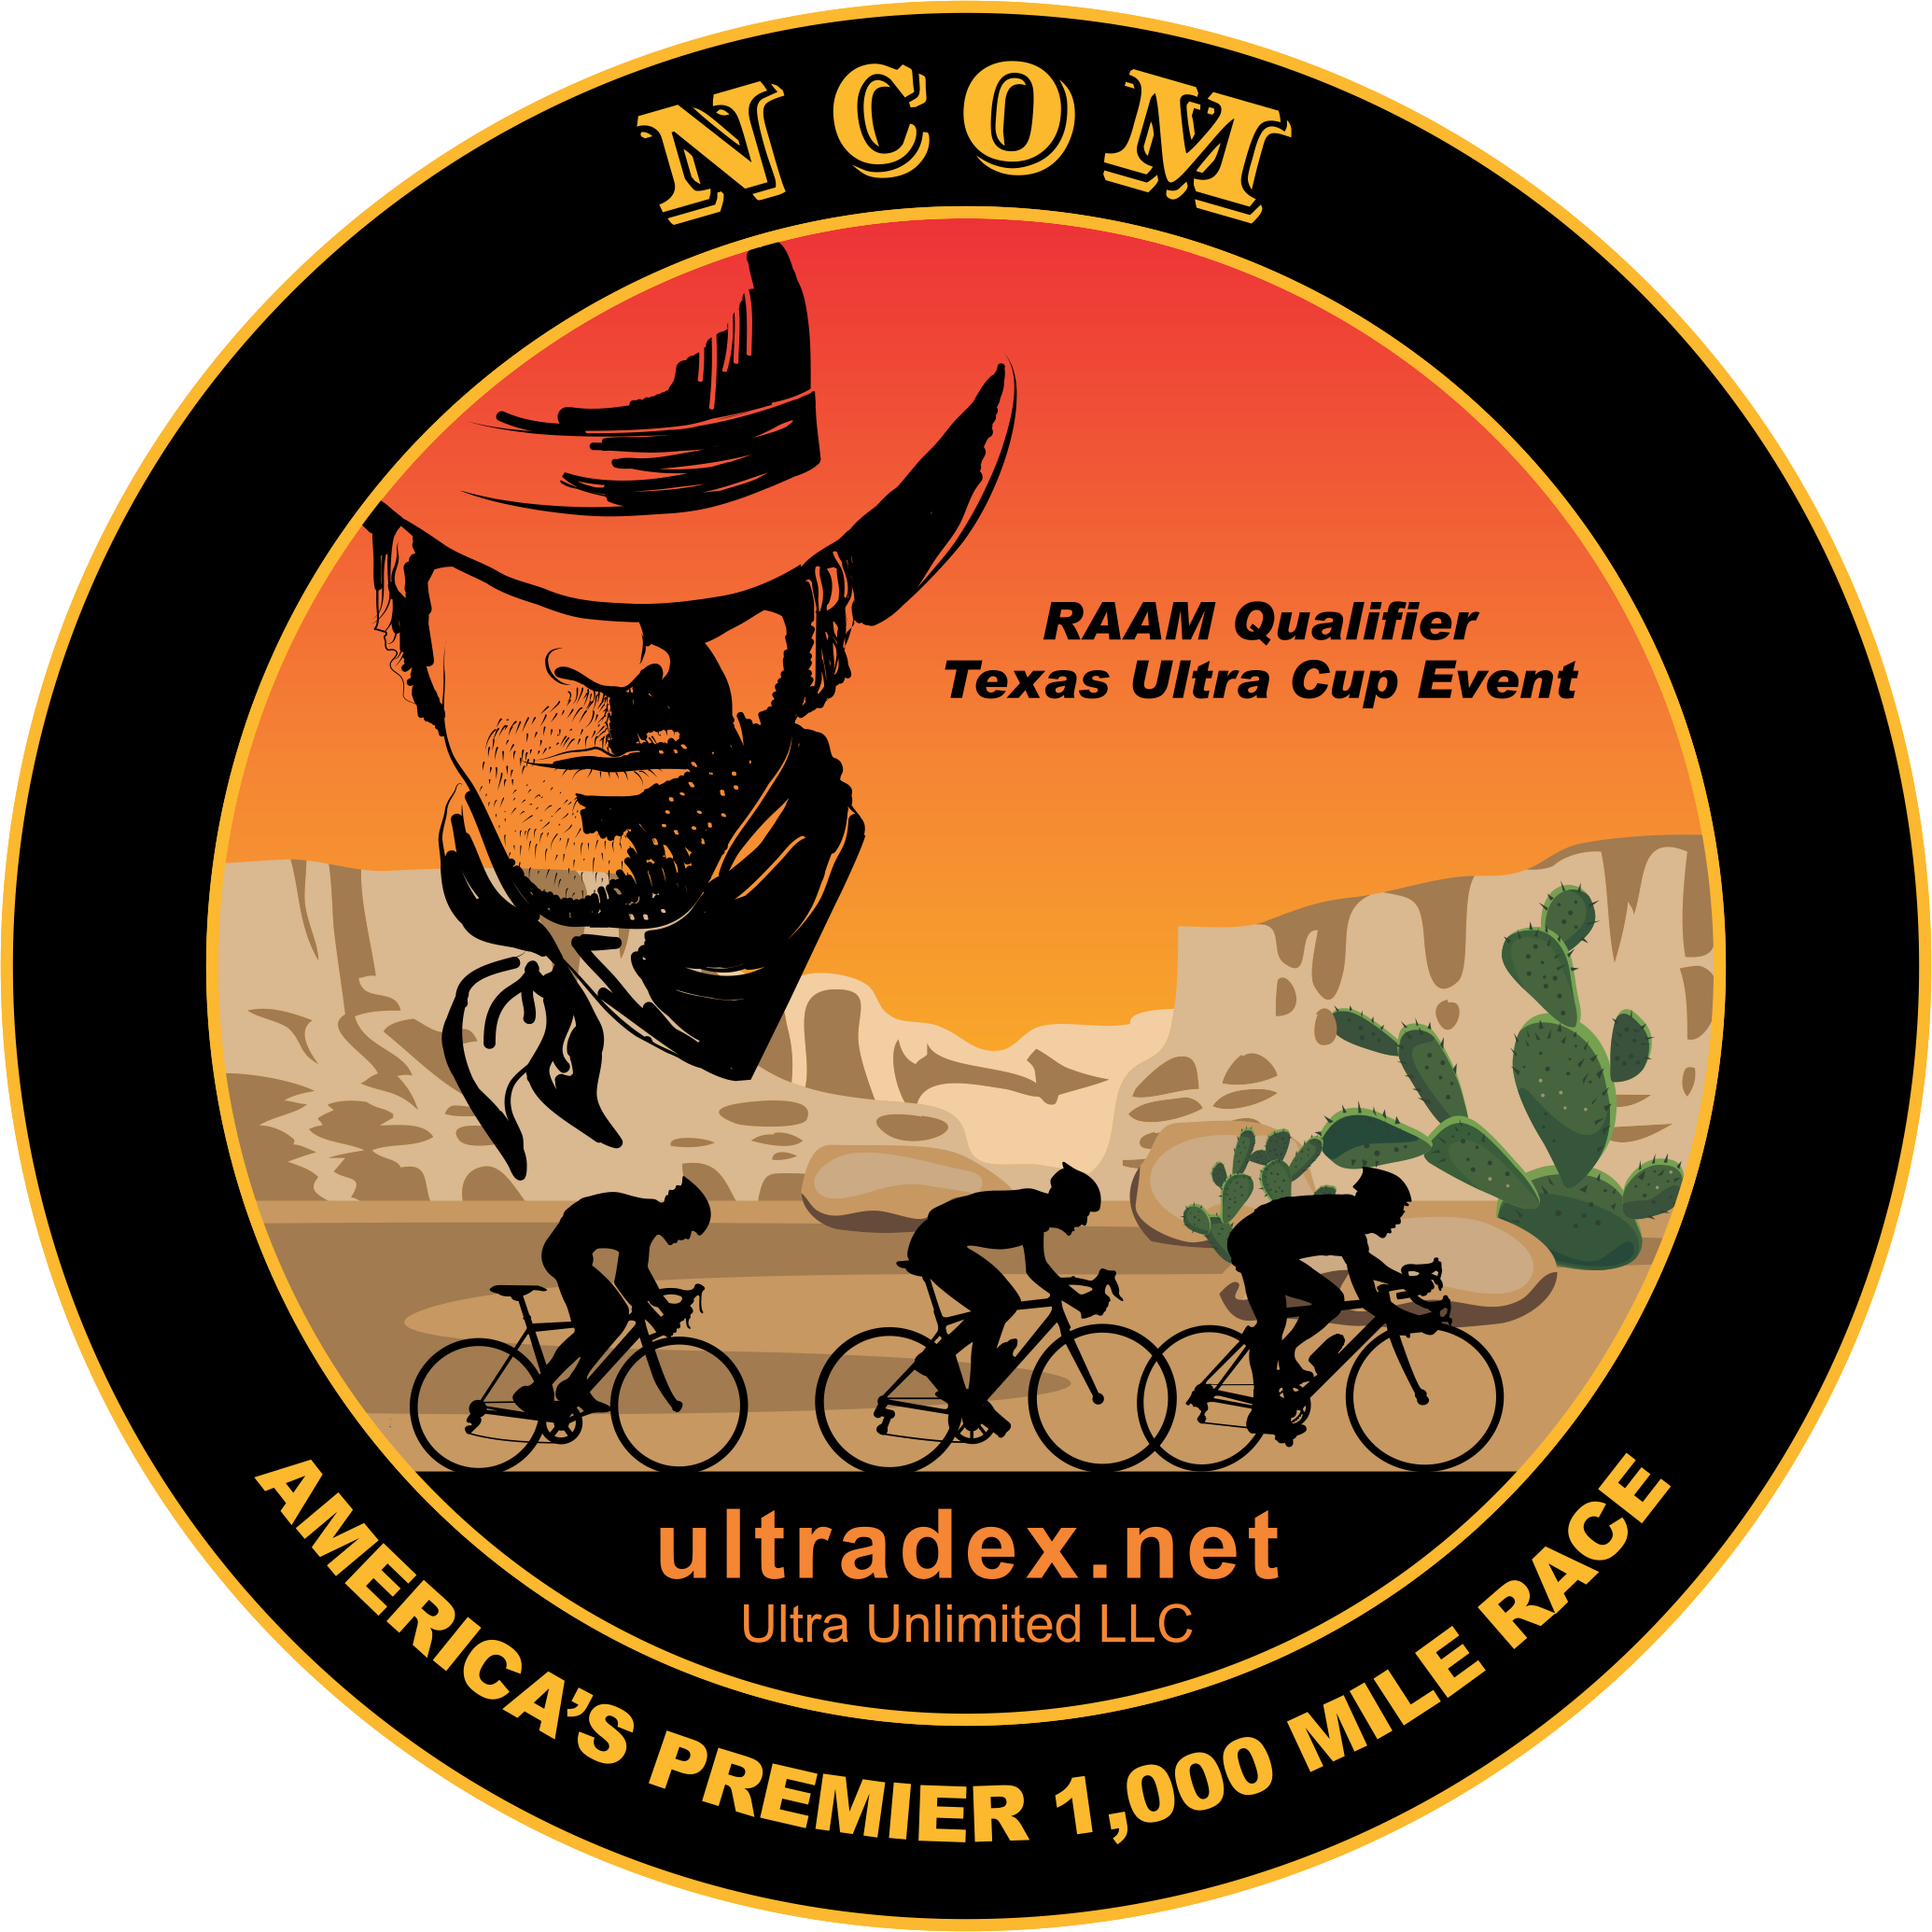 October 12-16, 2019 - 208 - 383 -and 1000 mile races